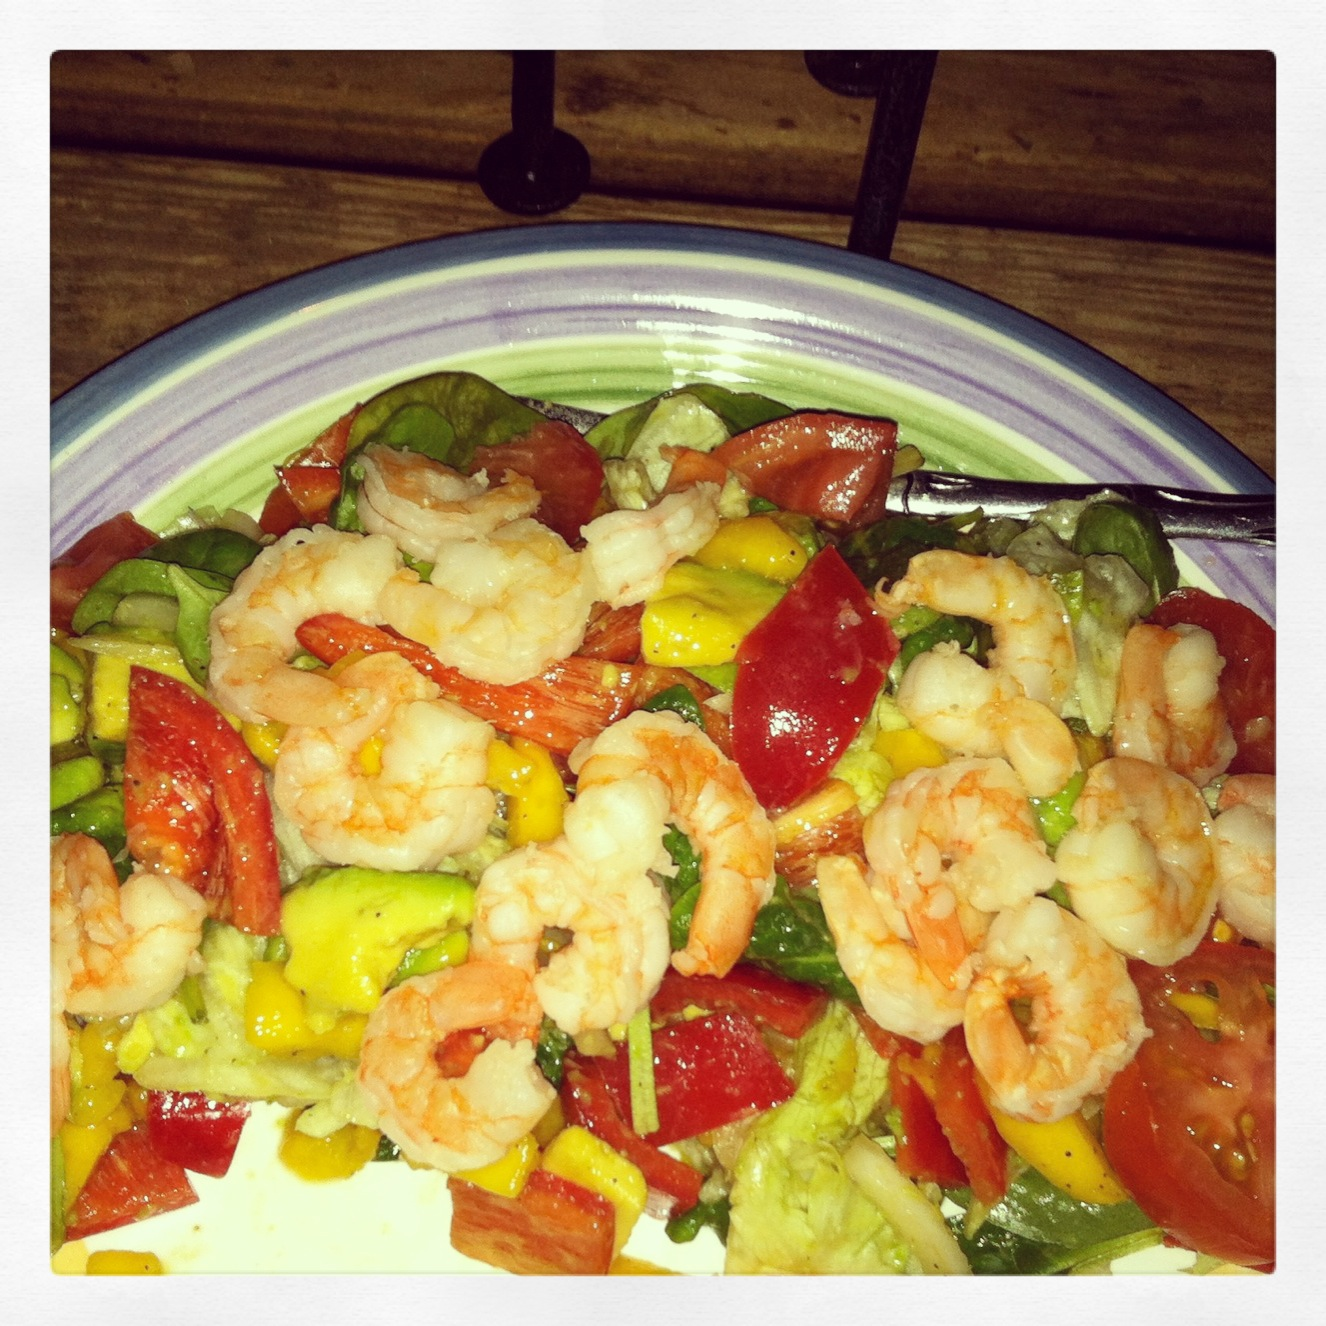 Shrimp Salad with mango, avocado, red pepper, onion, and tomatoes over ...